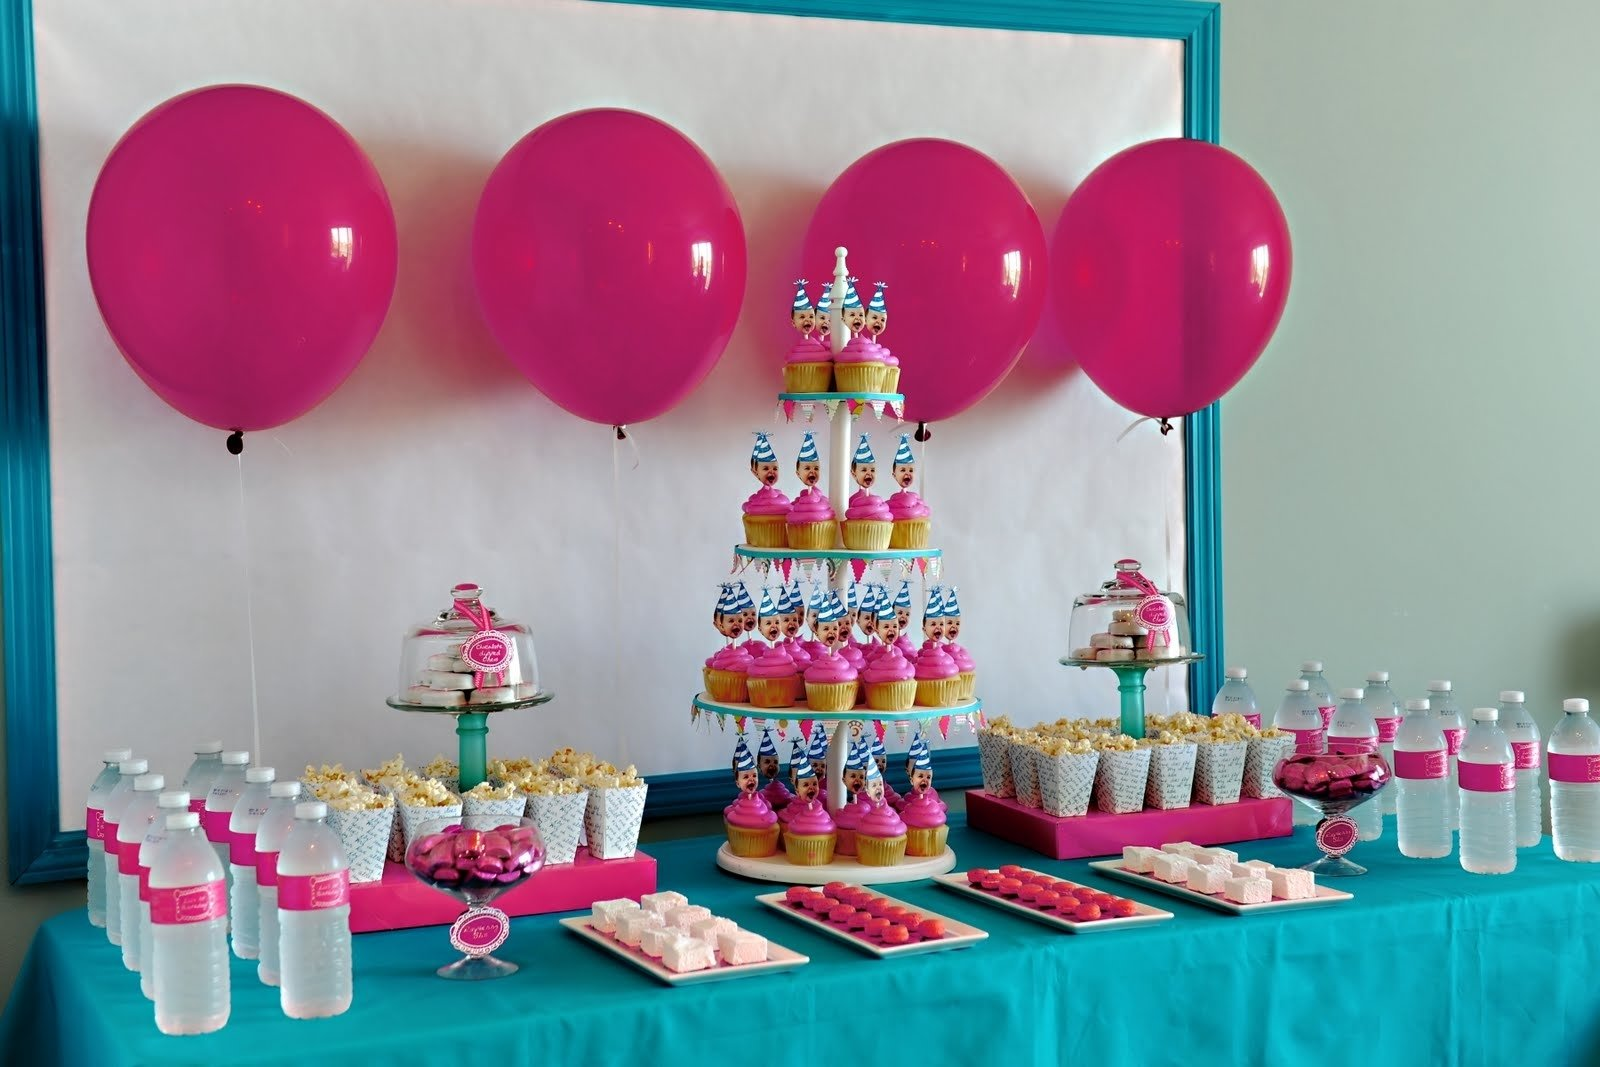 10 Cute Ideas For A 1 Year Old Birthday Party themes birthday menu ideas for a 1 year old birthday party also 1